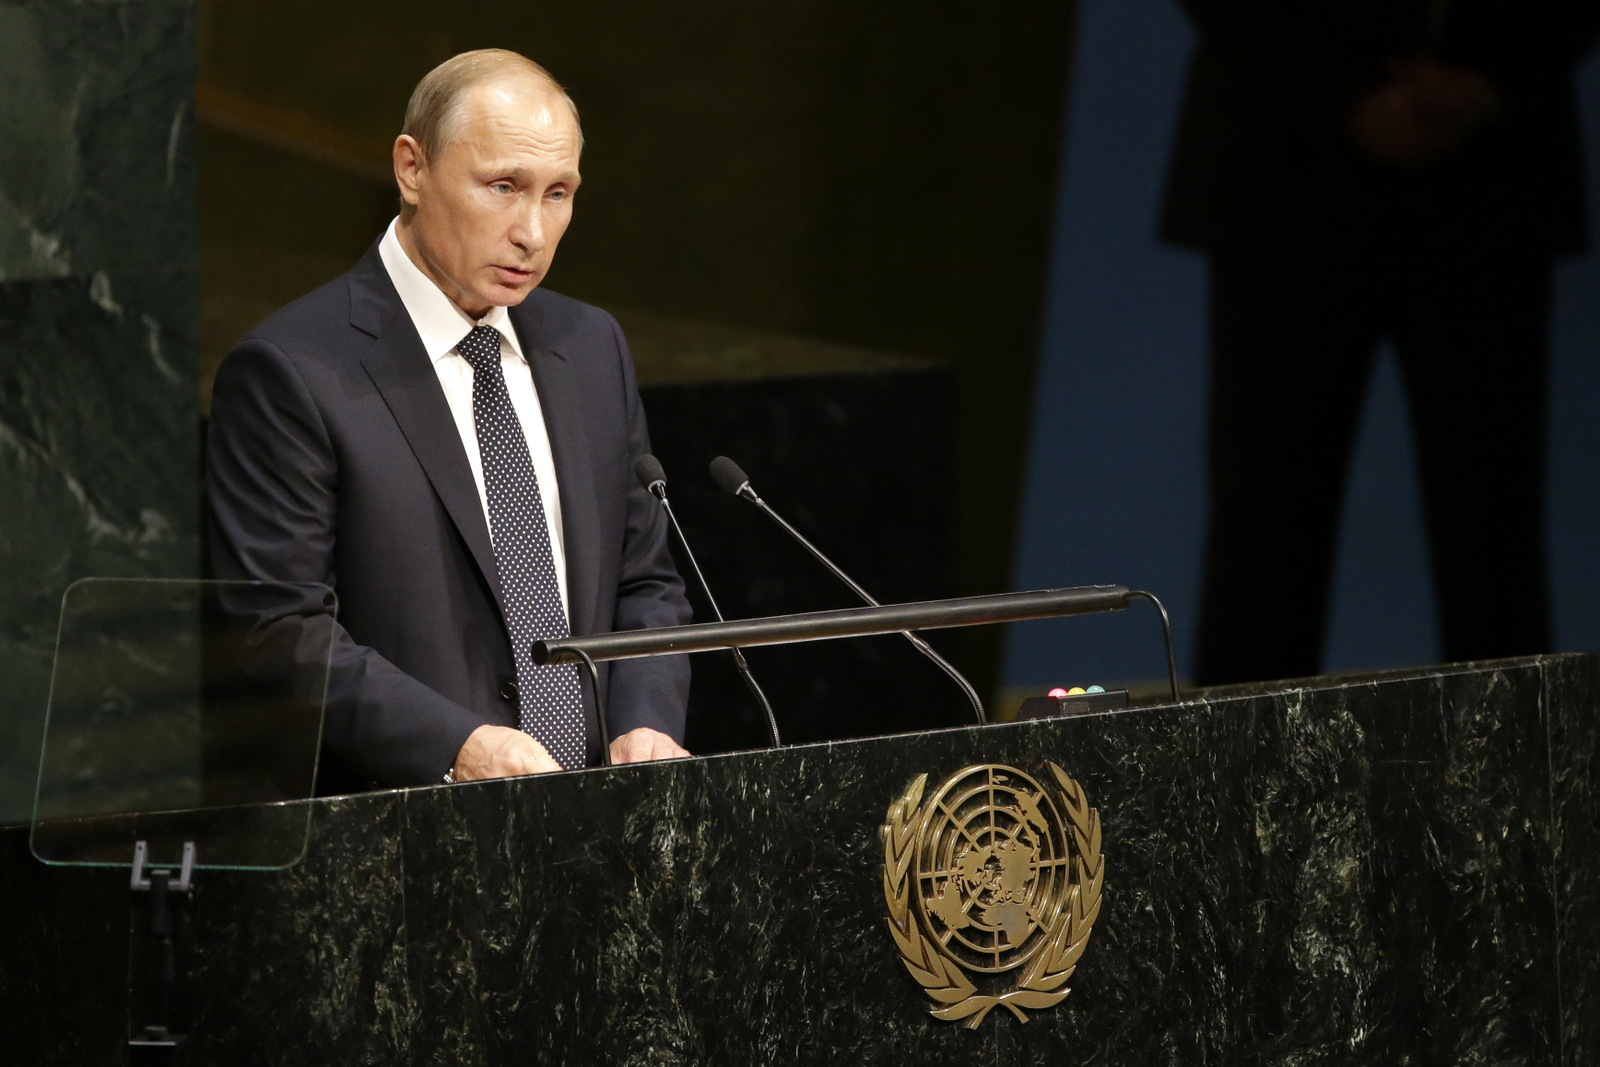 Russian President President Vladimir Putin addresses the 70th session of the United Nations General Assembly at U.N. headquarters, Monday, Sept. 28, 2015. (AP Photo/Mary Altaffer)